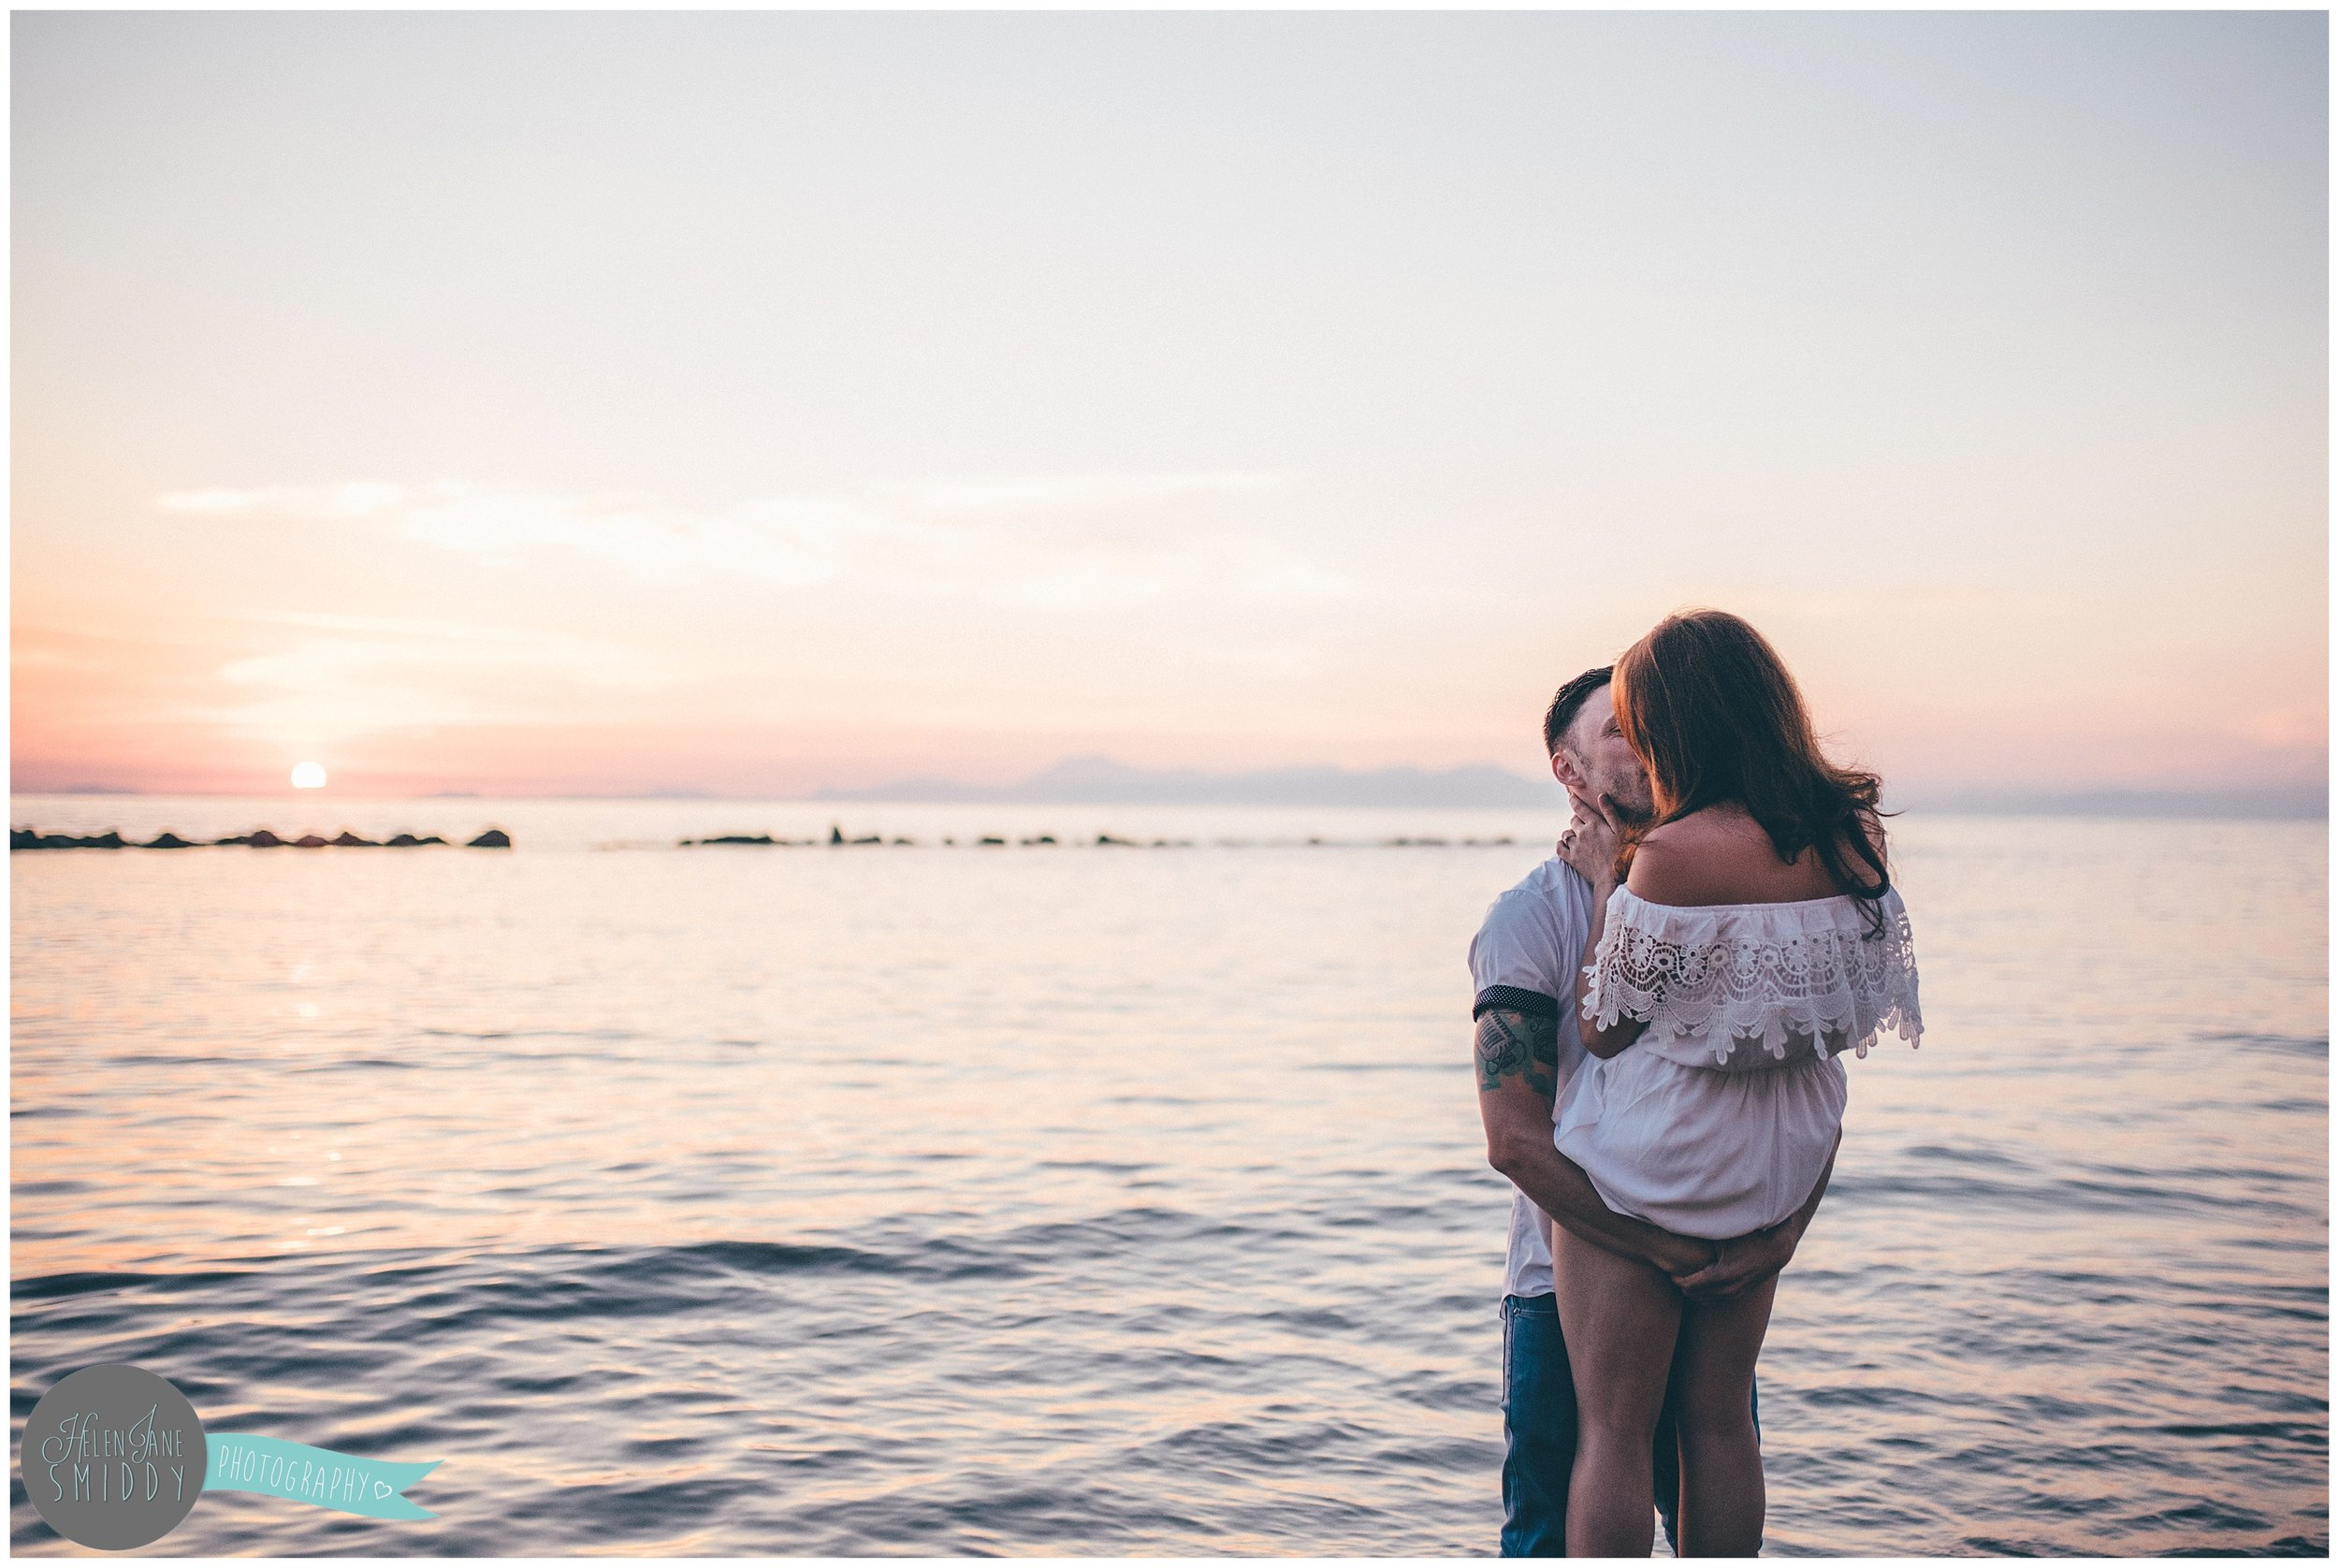 Sabrina and Dom kiss on the beach at sunset in Santa Maria di Castellabate for their pre-wedding photoshoot.